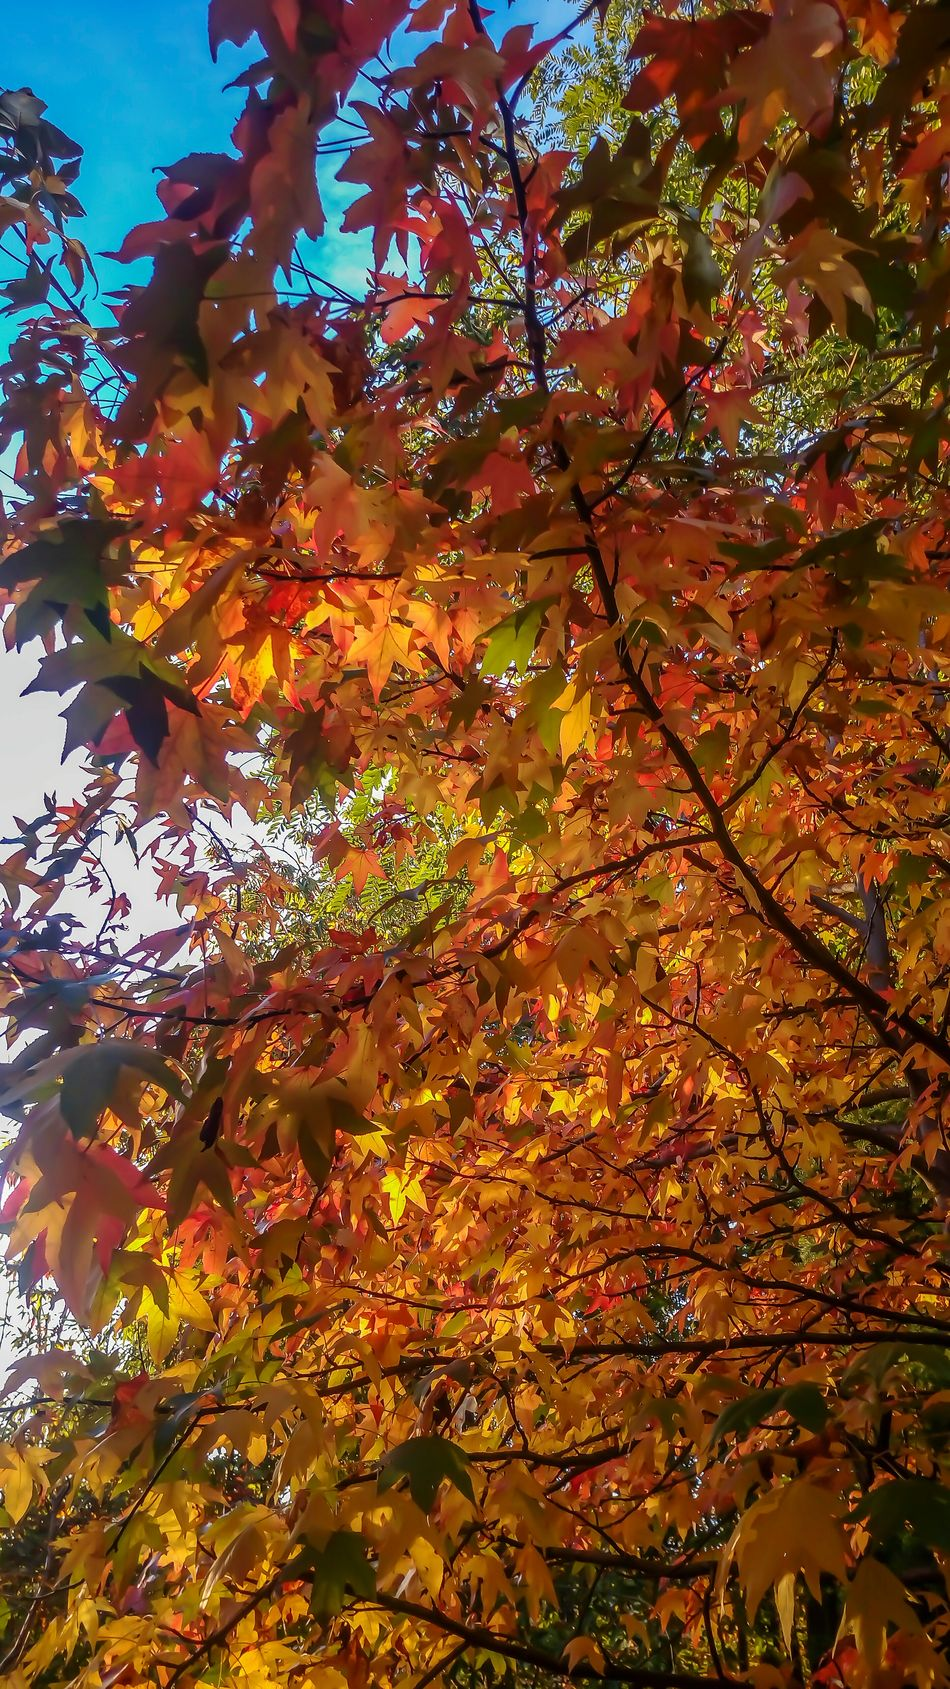 Orange Color Nature Multi Colored Beauty In Nature Tranquility Beauty In Nature Autumn Autumn Colors Mygardentoday Garden Photography StonexOneGalileo Athomeinthemountains Athomeinthewood At Home Sweet Home Countryhouse Countrystyle In The Wood Color Explosion Liquidambar Colors Tree